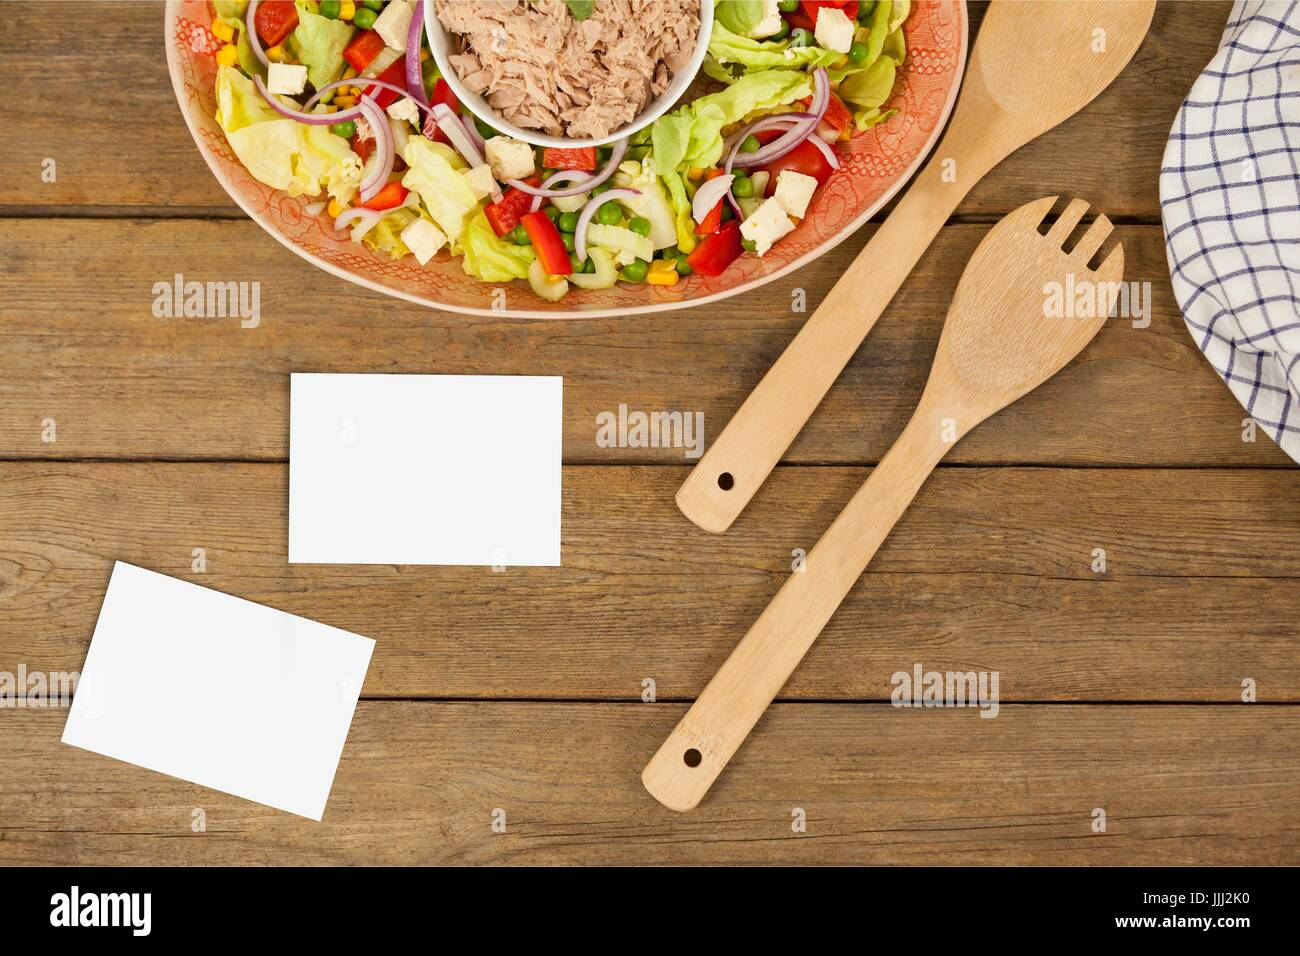 Bussiness card on wooden desk with food 3d - Stock Image